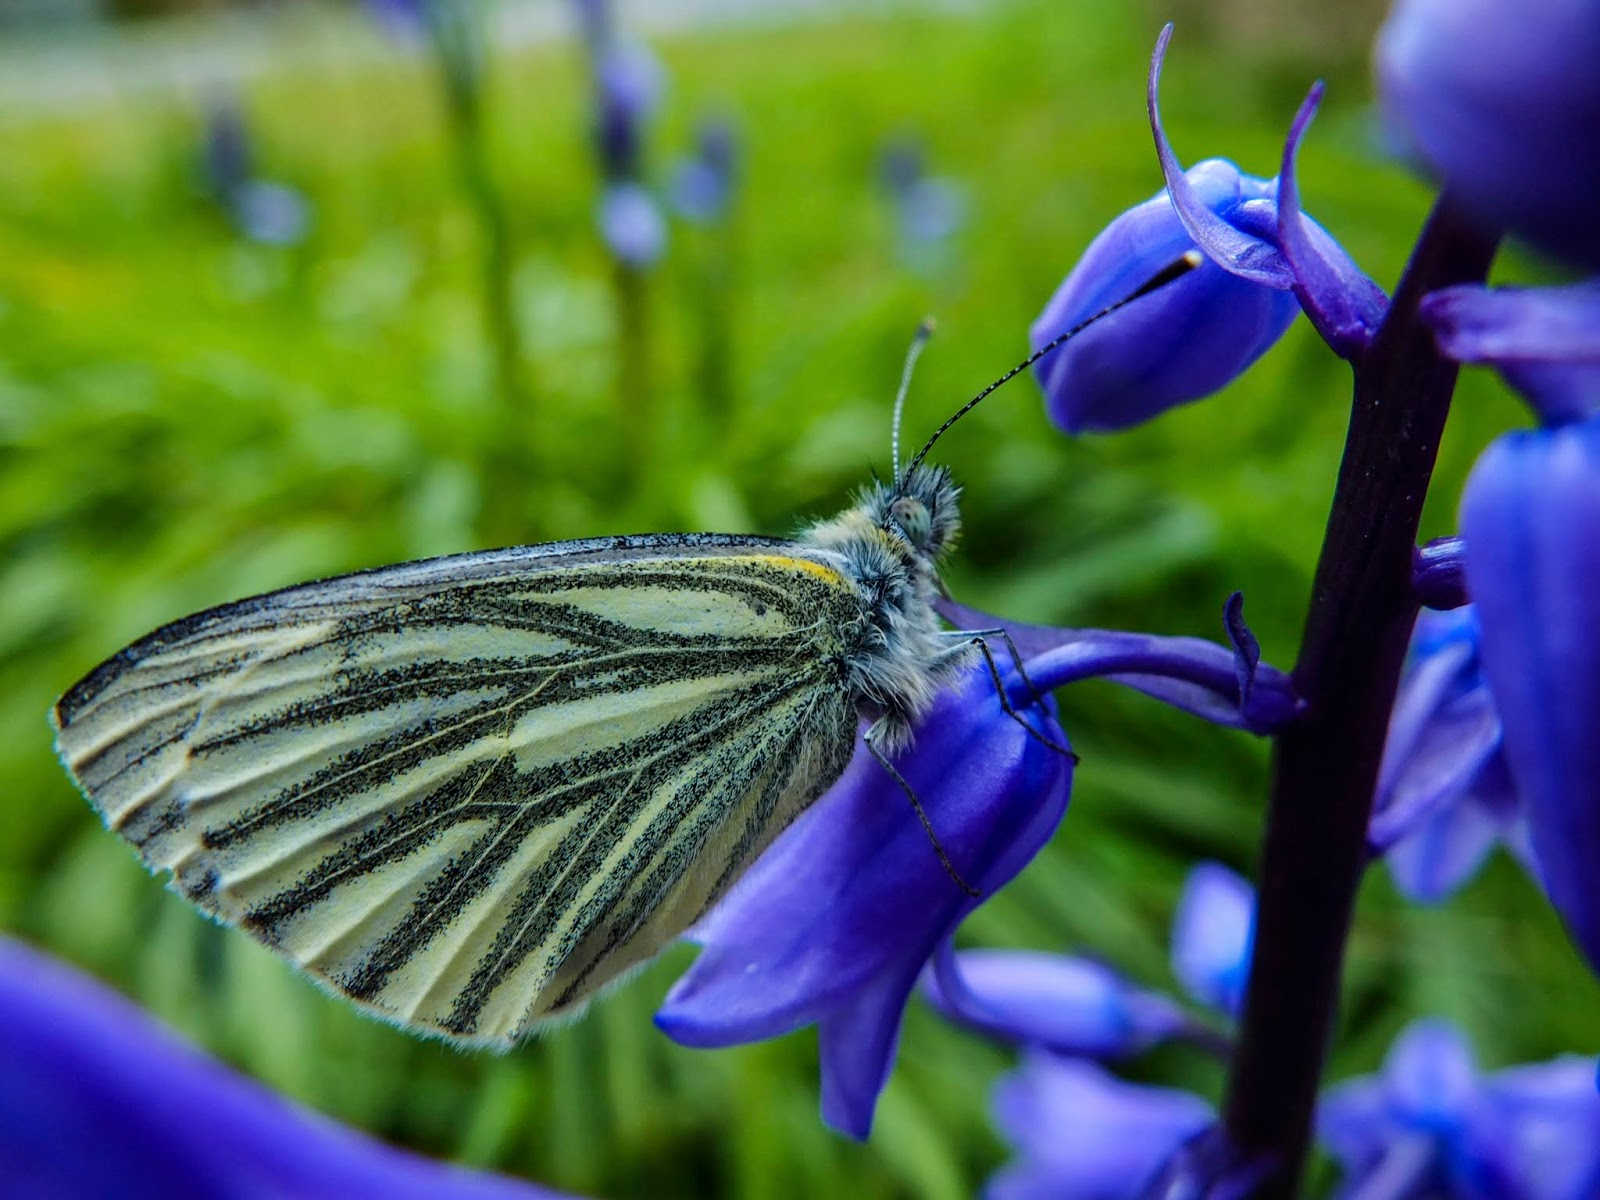 A close up of a light yellow butterfly with black stripes sitting on a bluebell flower.